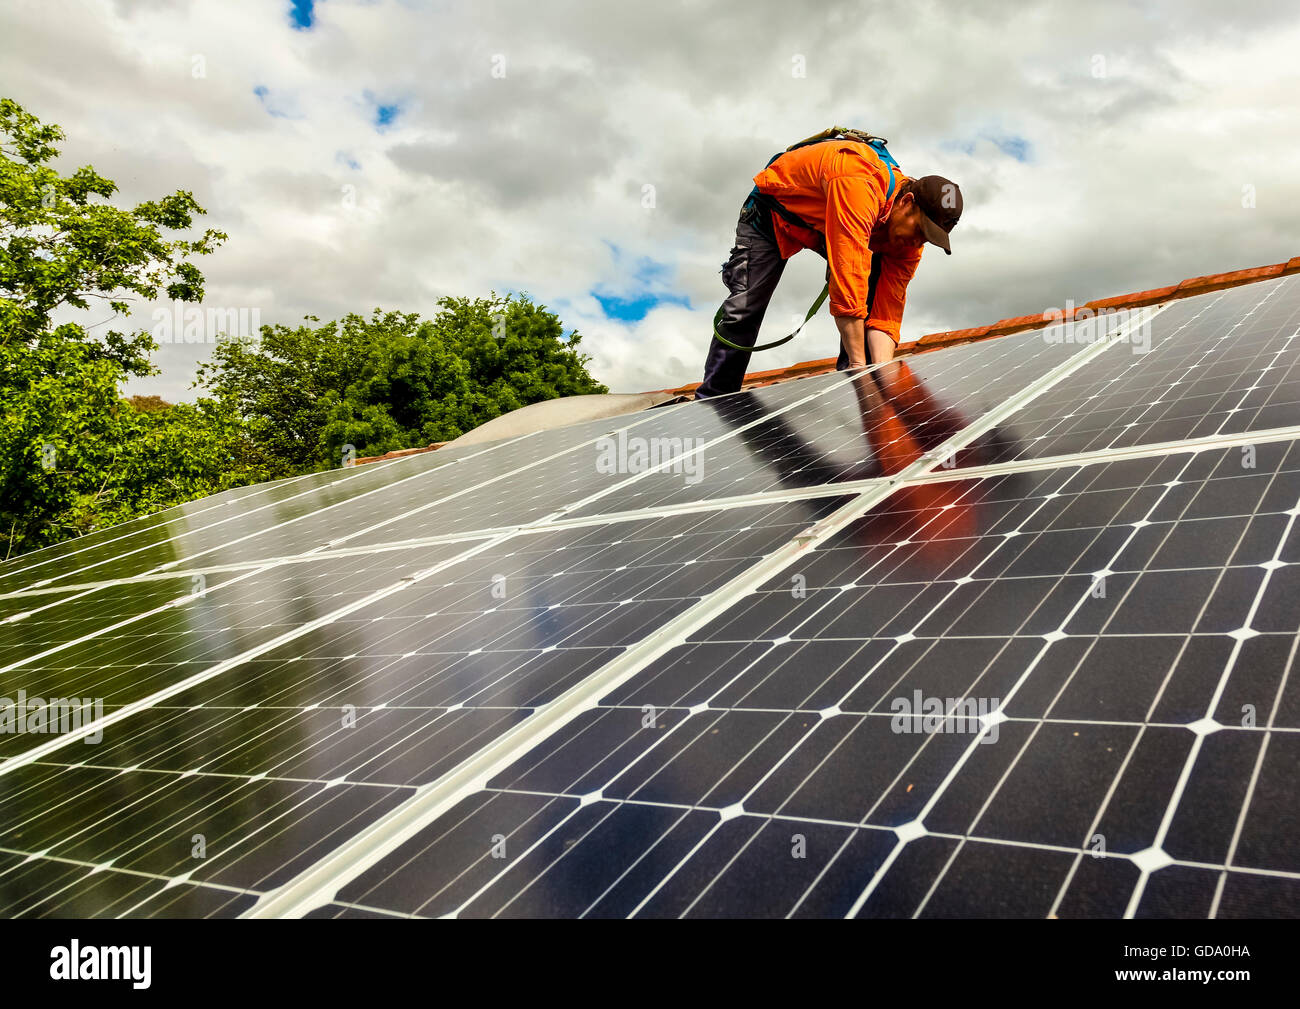 Electrician checking solar panels - Stock Image